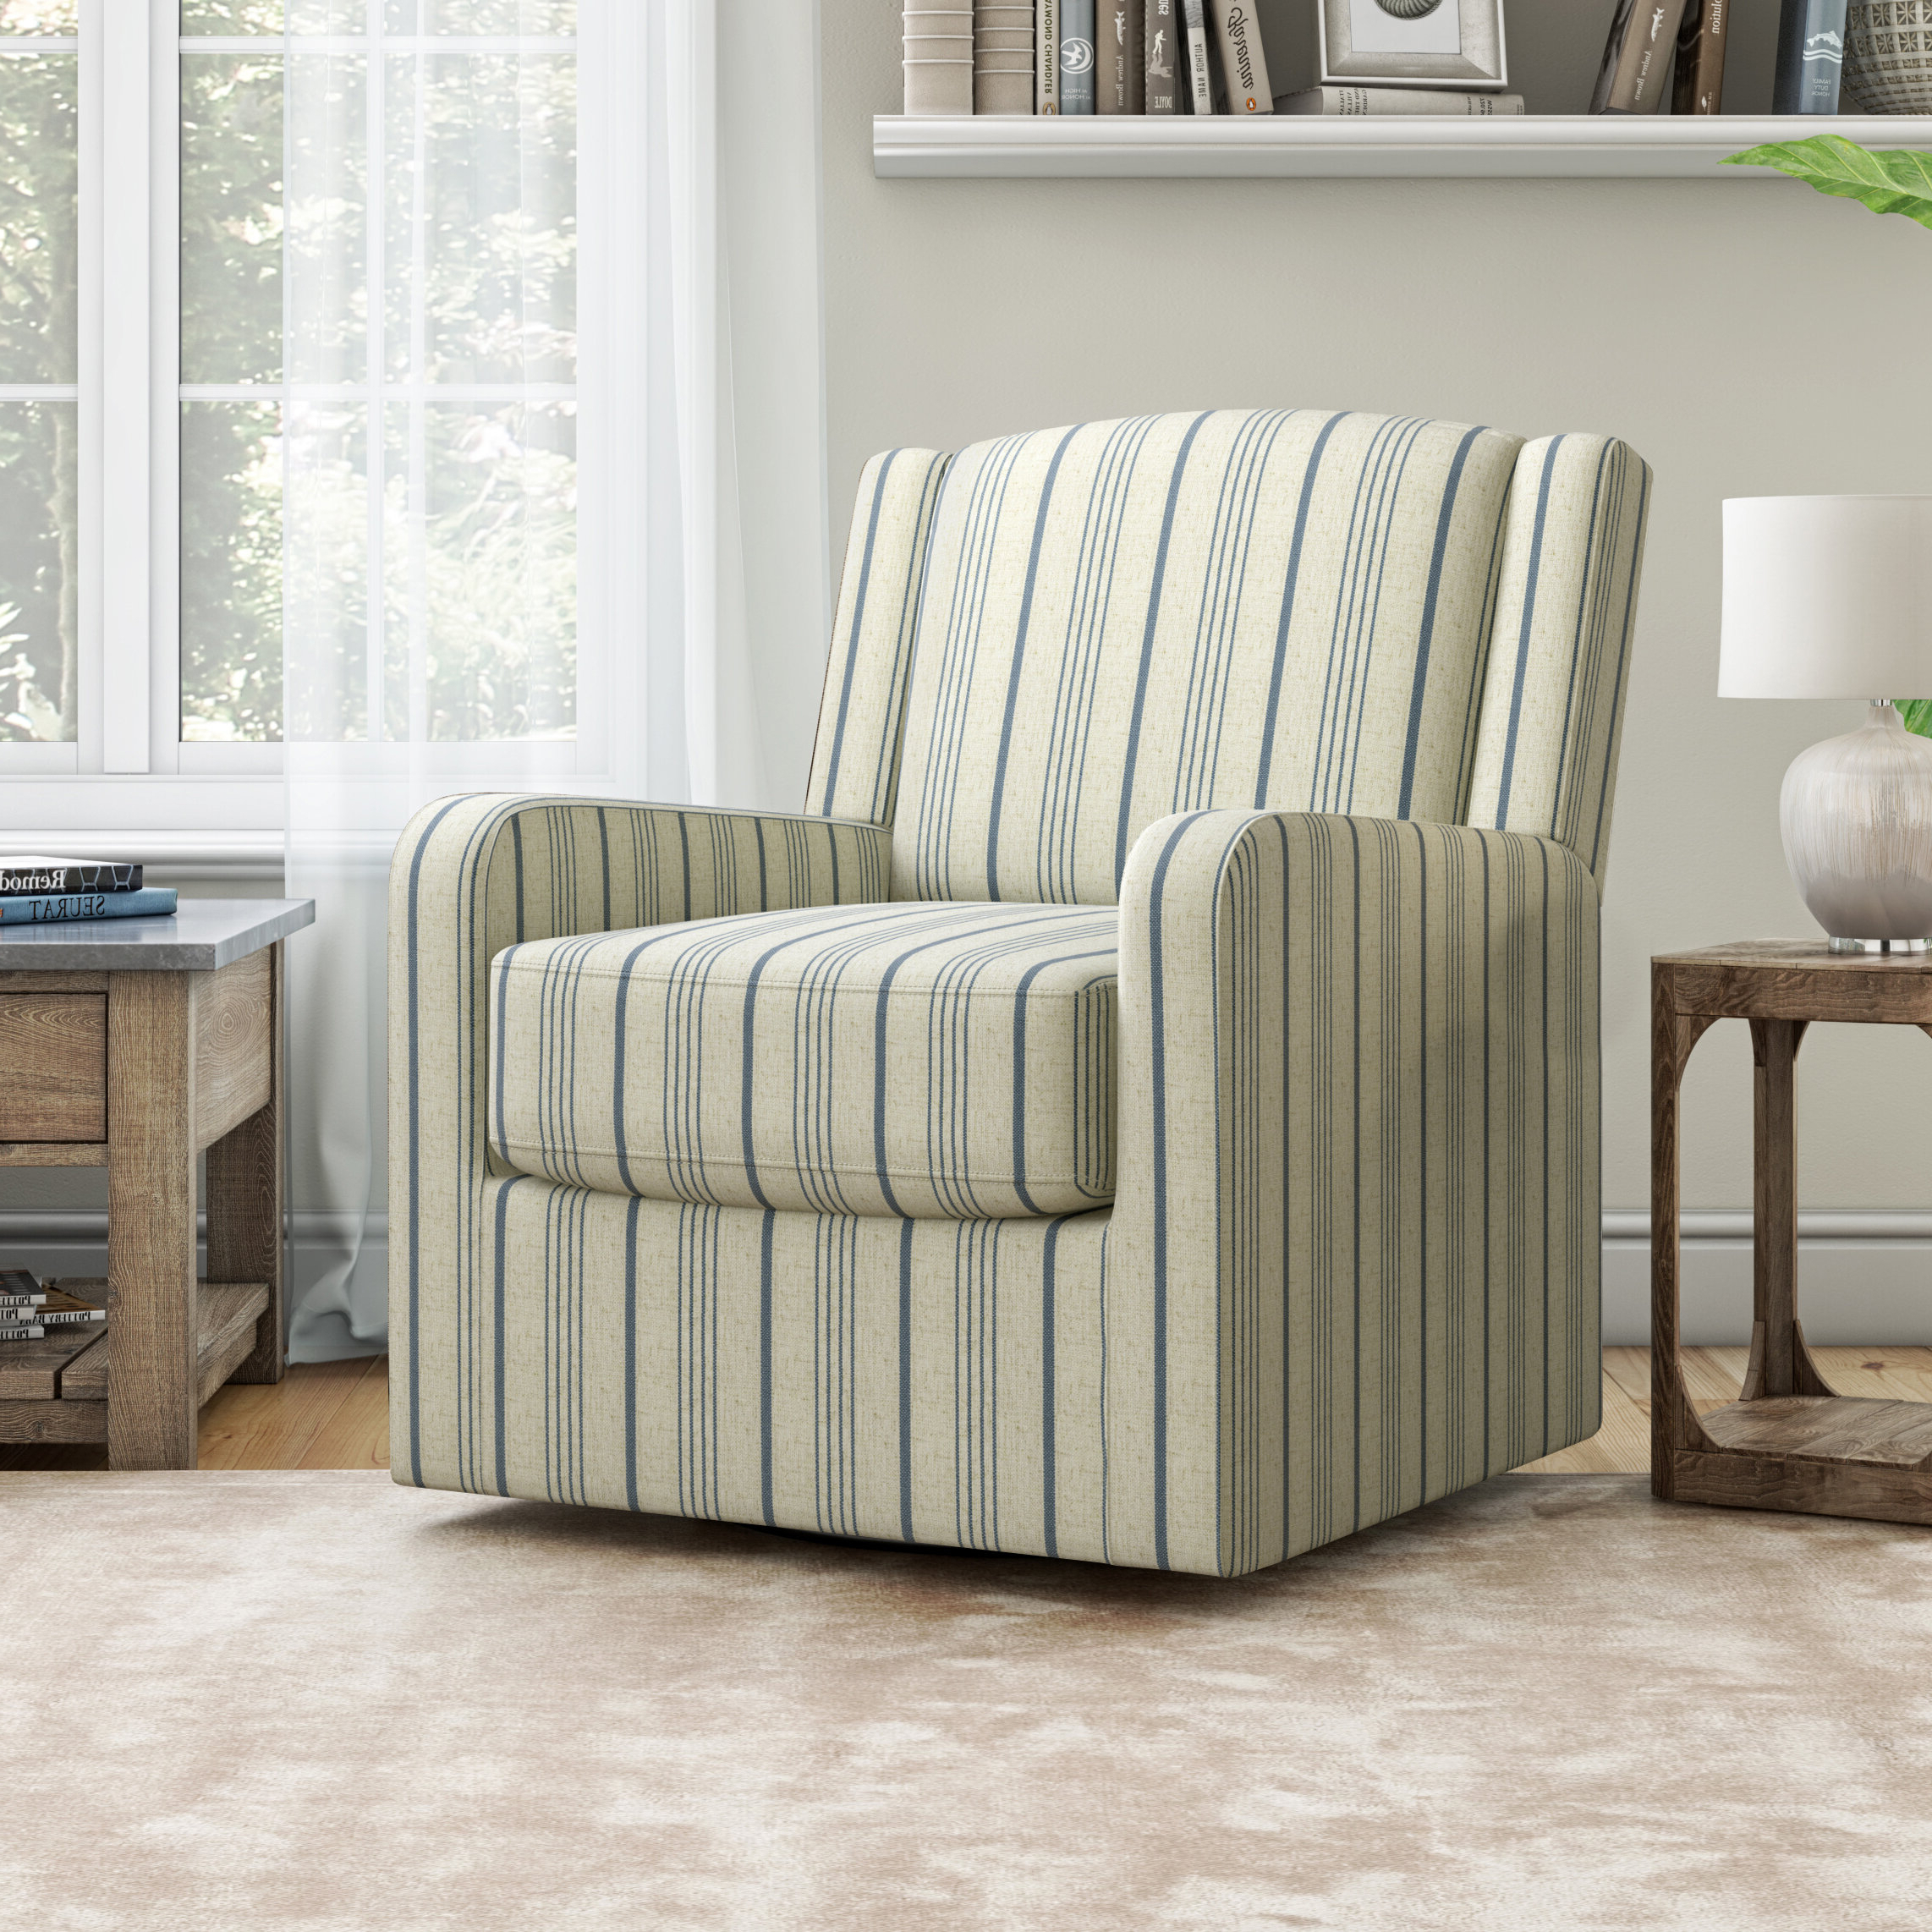 Lee Robinson Swivel Armchair Throughout Famous Zalina Swivel Armchairs (View 9 of 20)